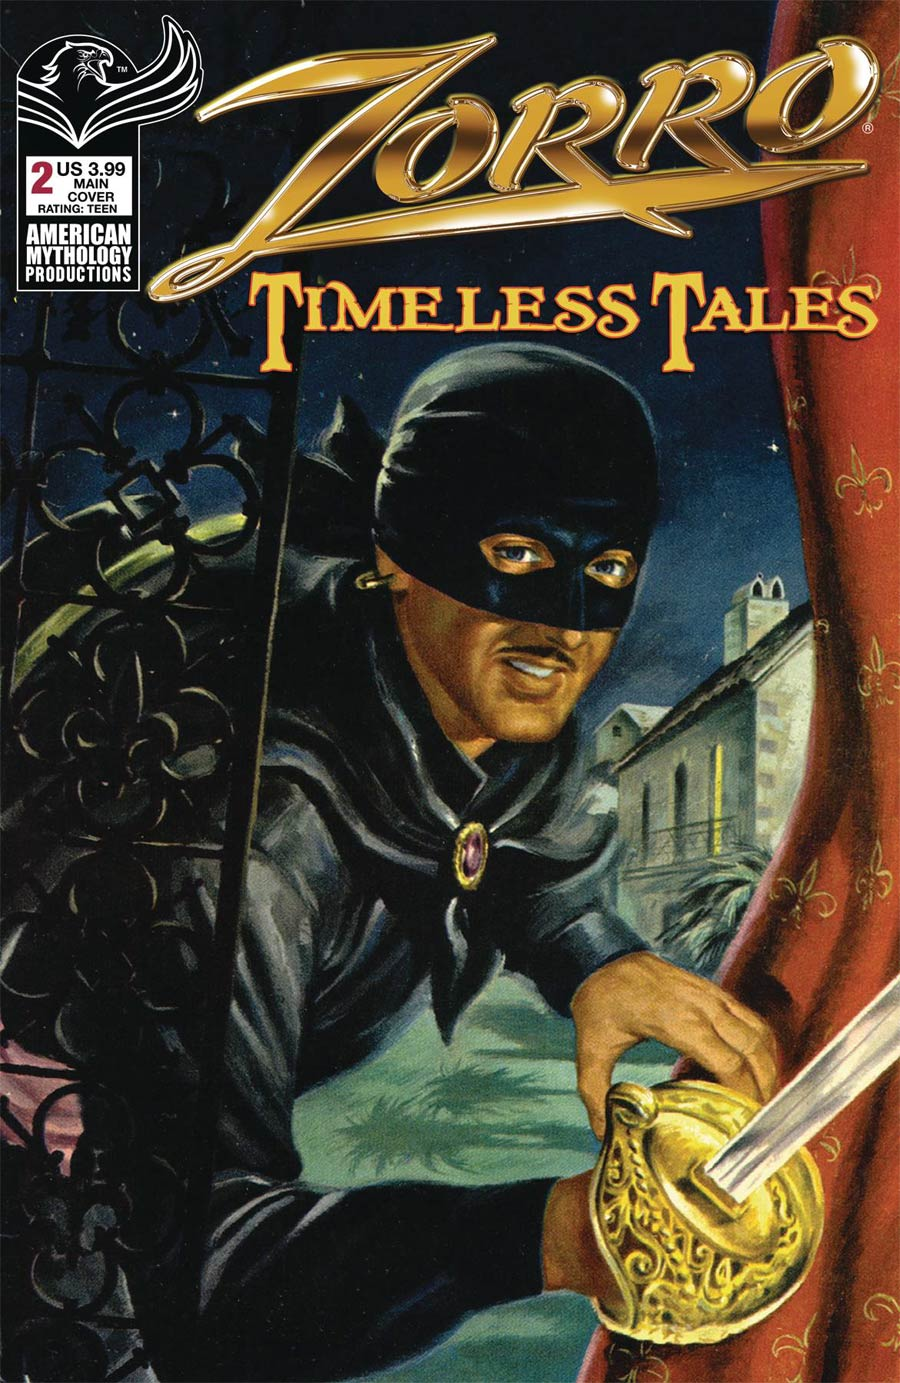 Zorro Timeless Tales #2 Cover A Regular Cover